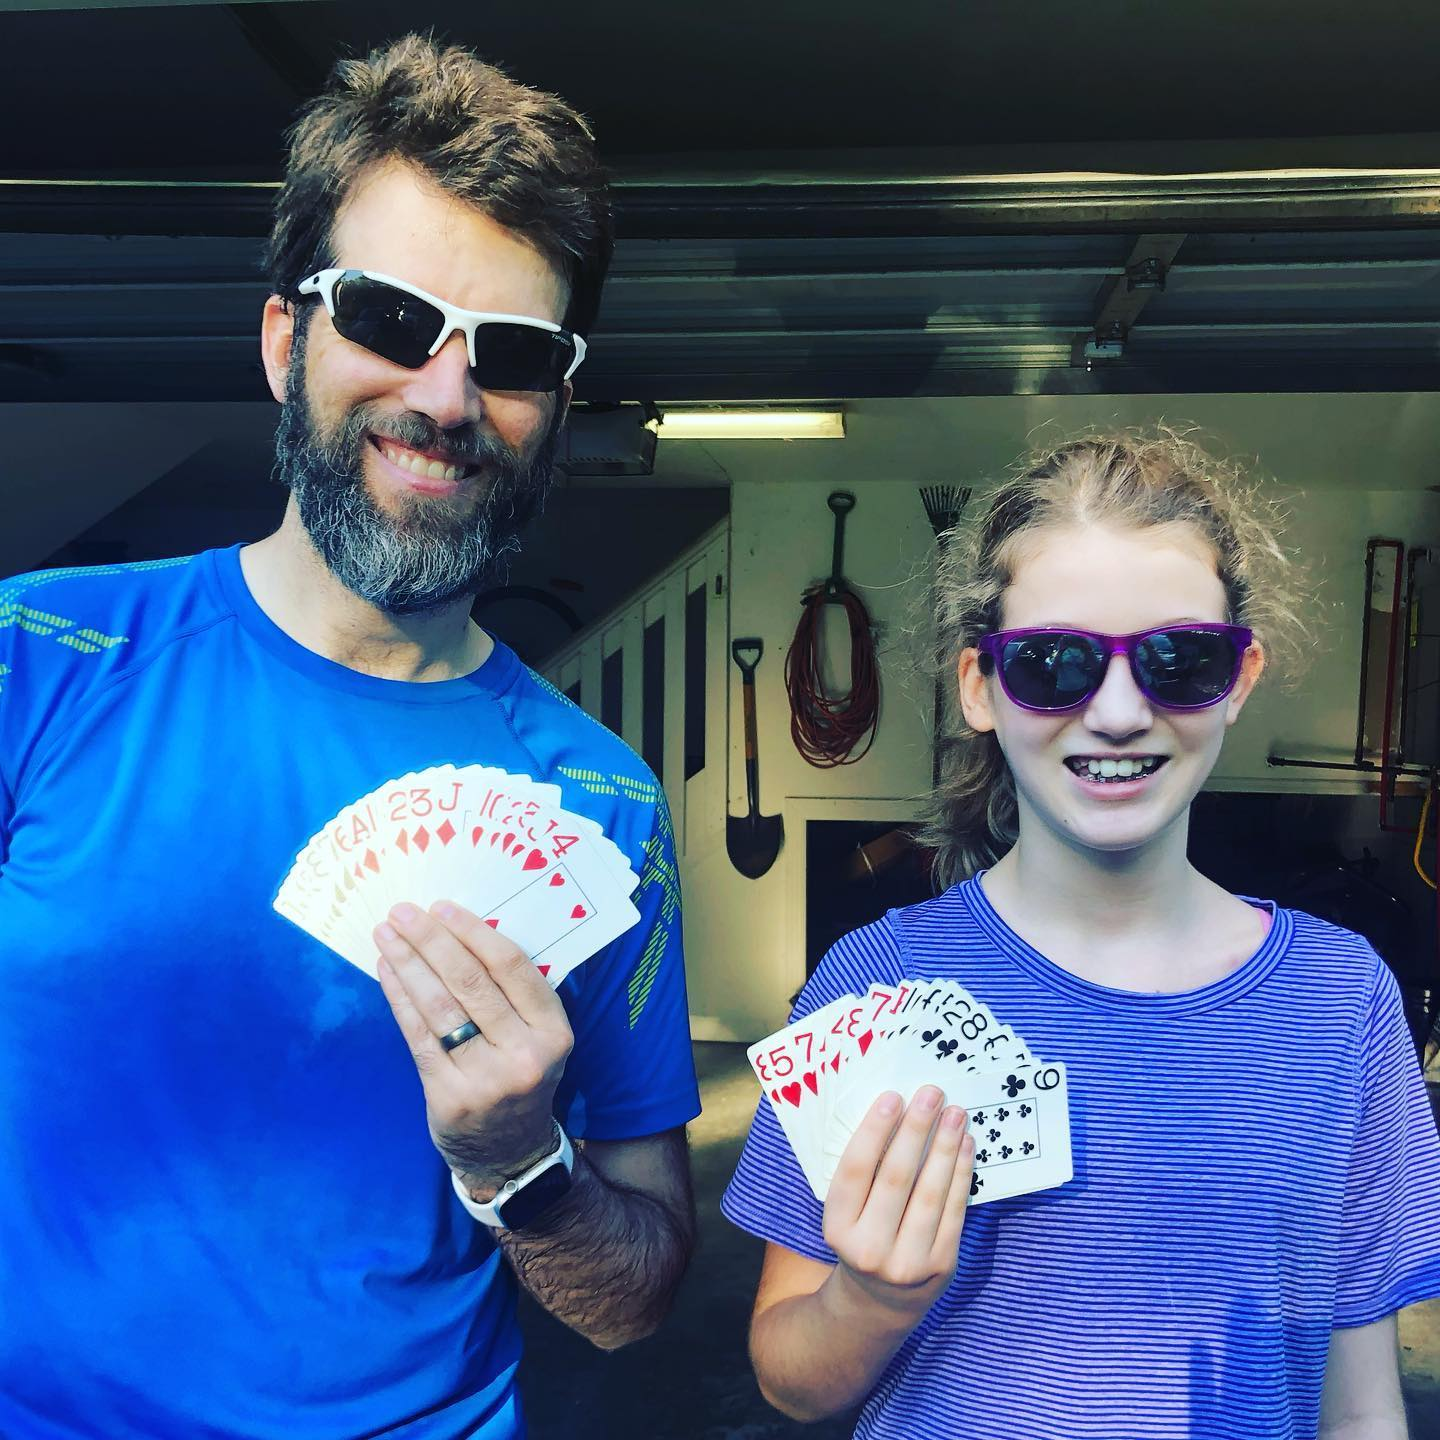 Sara and I did our deck-of-cards partner workout again today. Each person takes turns drawing a single card and you work through the entire deck. The suit determines what exercise you do and the number defines the reps. In total Sara did 38 sit-ups, 67 pushups, 47 squats, and 43 burpees. I did 56 sit-ups, 27 pushups, 49 squats, and 51 burpees. As always, this is a really fun way to workout. #family #workout